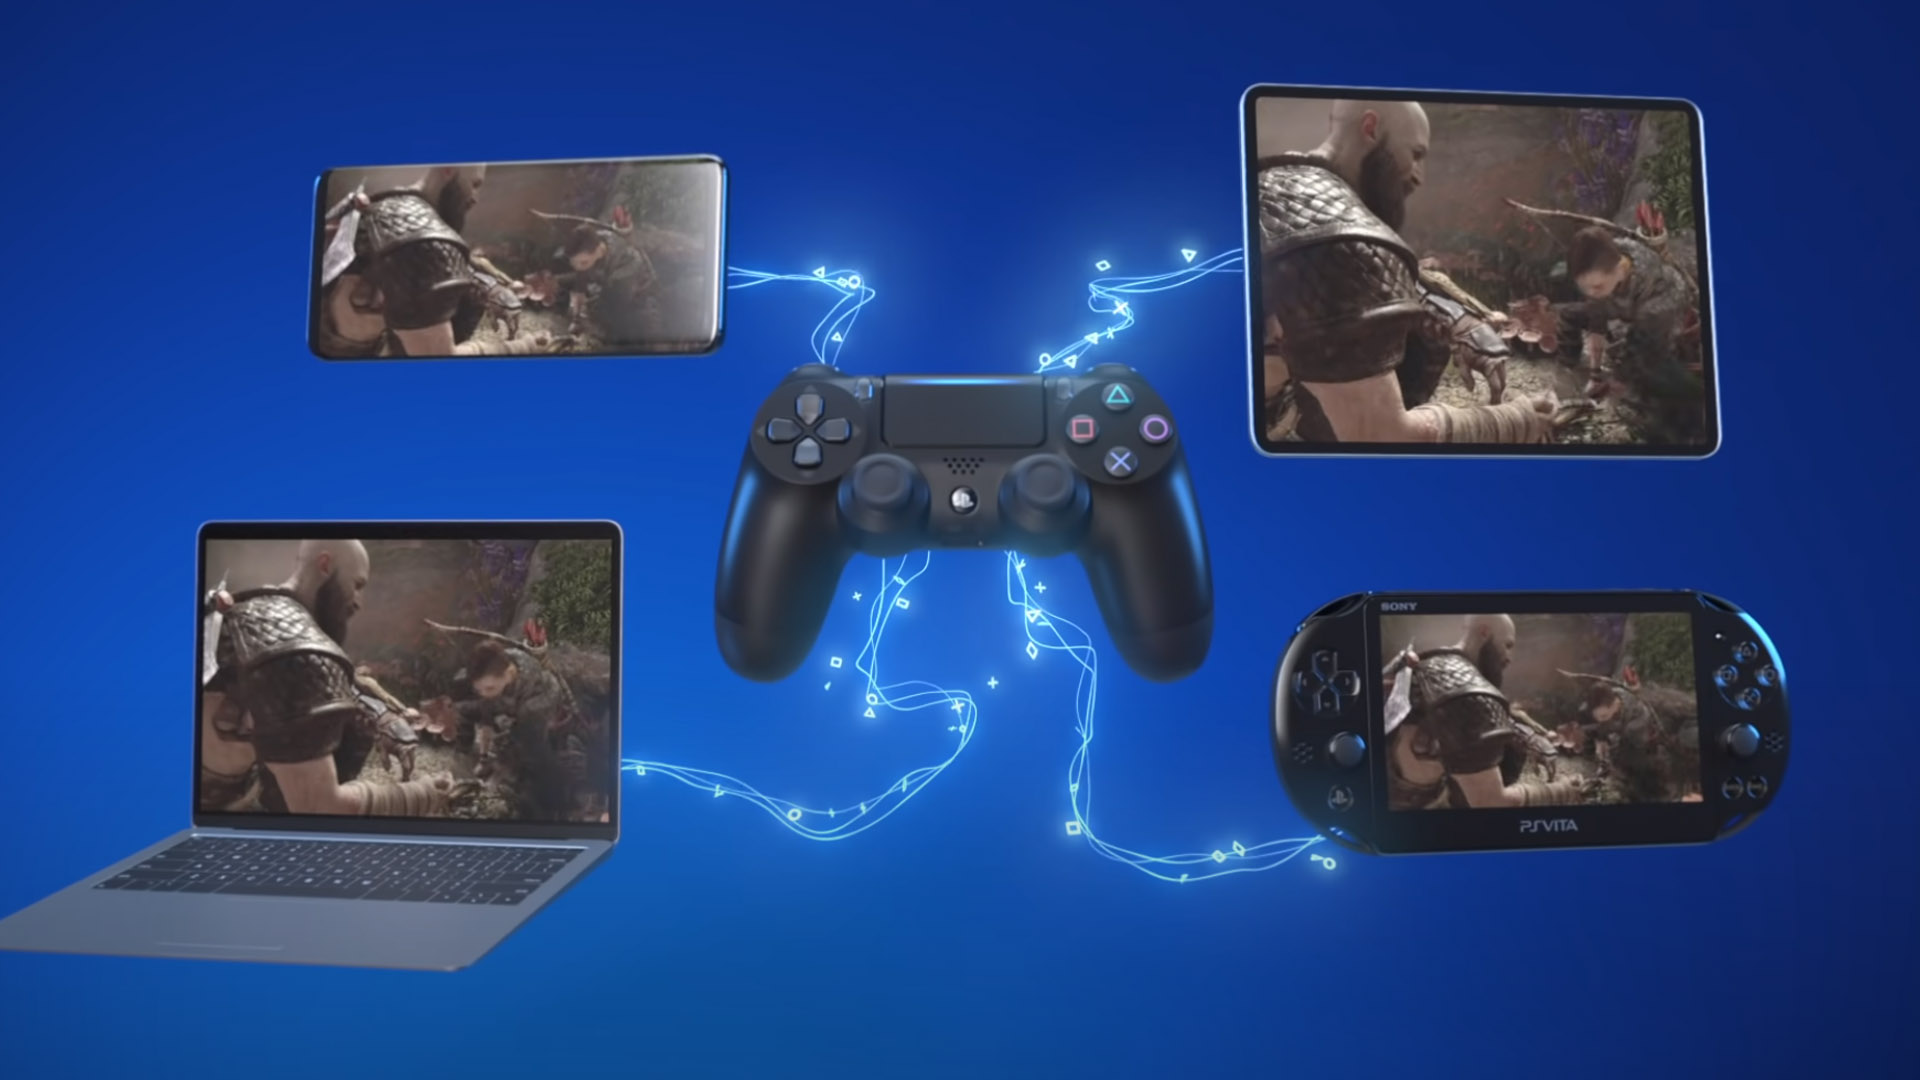 You may not need a PlayStation to play PlayStation in the future